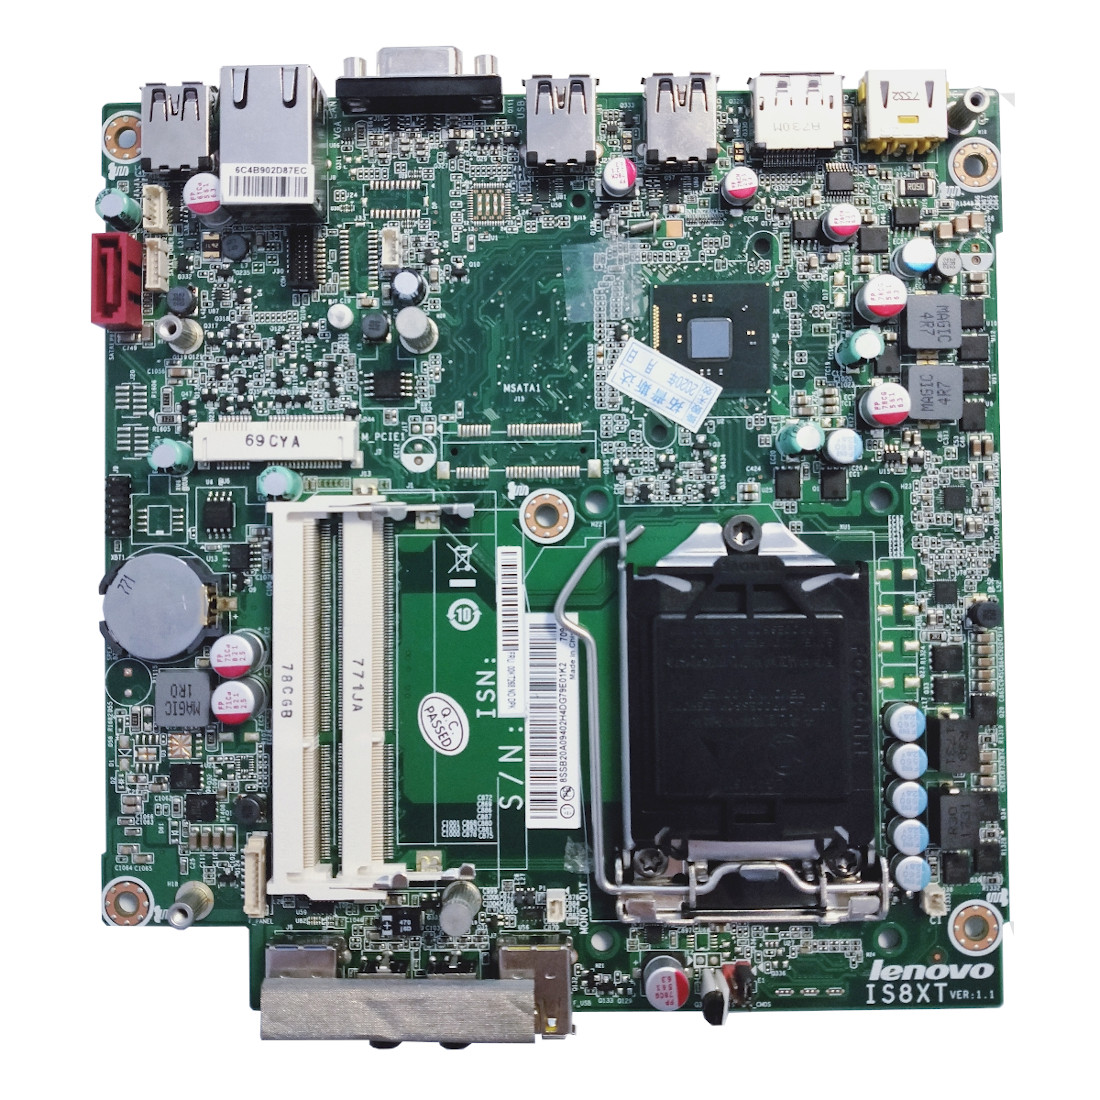 Lenovo_ThinkCentre_M73_Tiny_motherboard.jpg motherboard layout